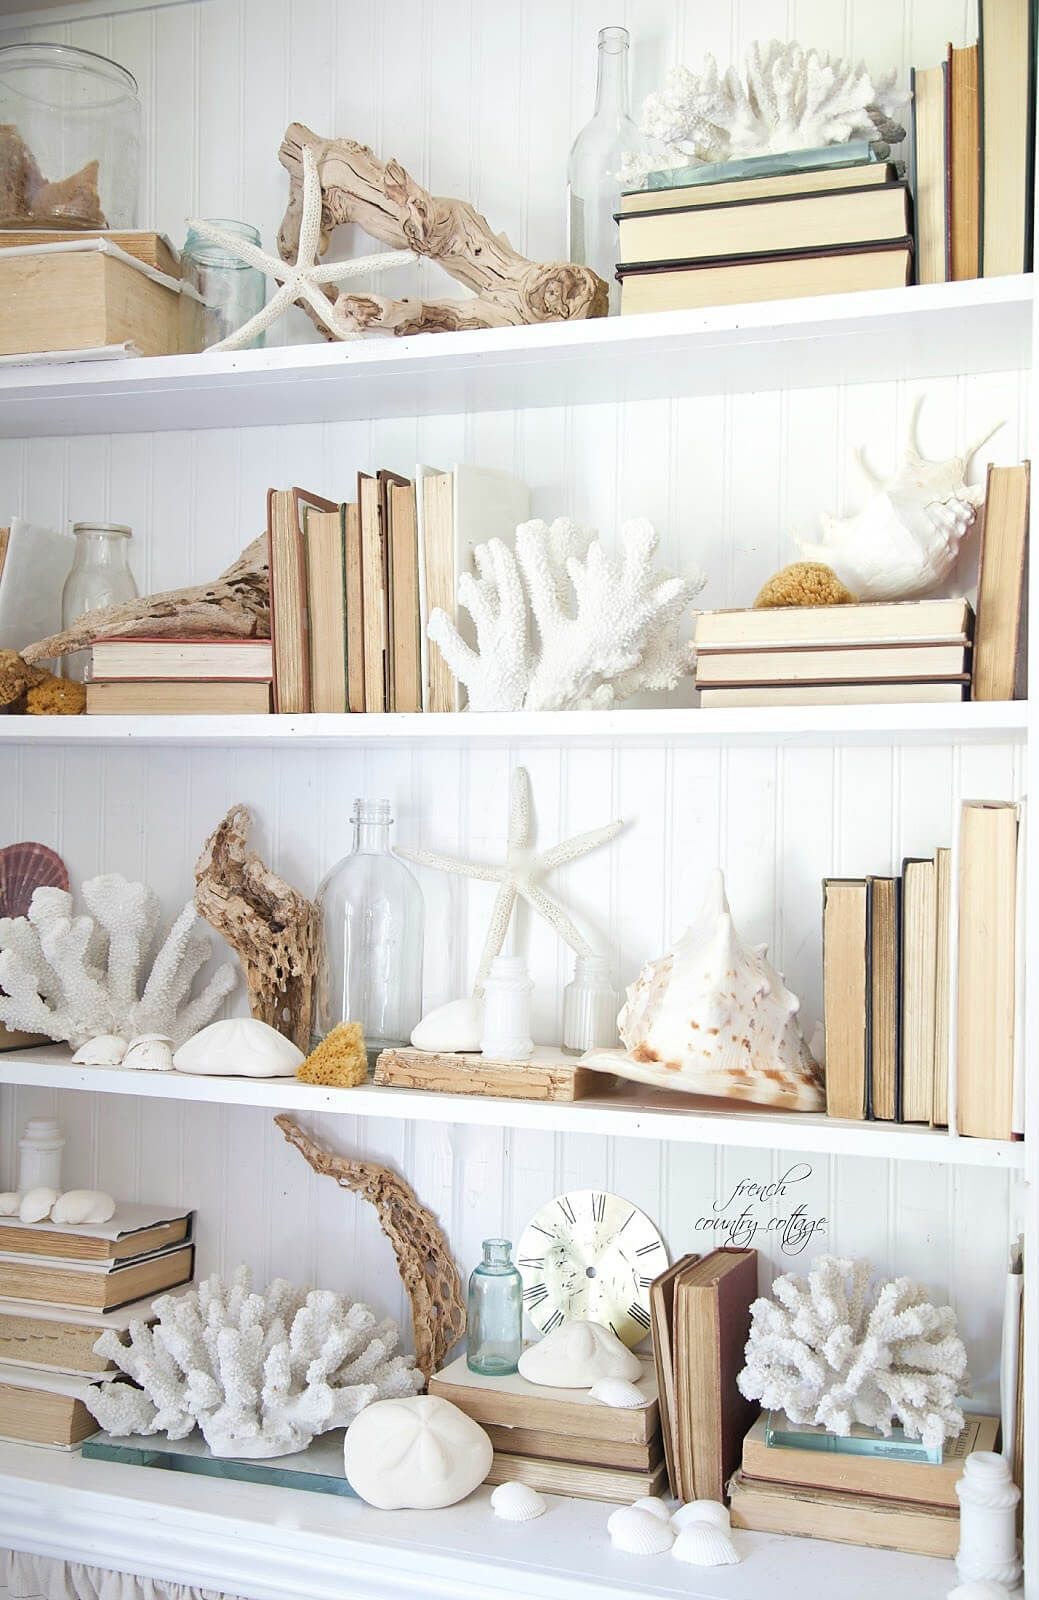 Bookcase Crawling With C And Shells